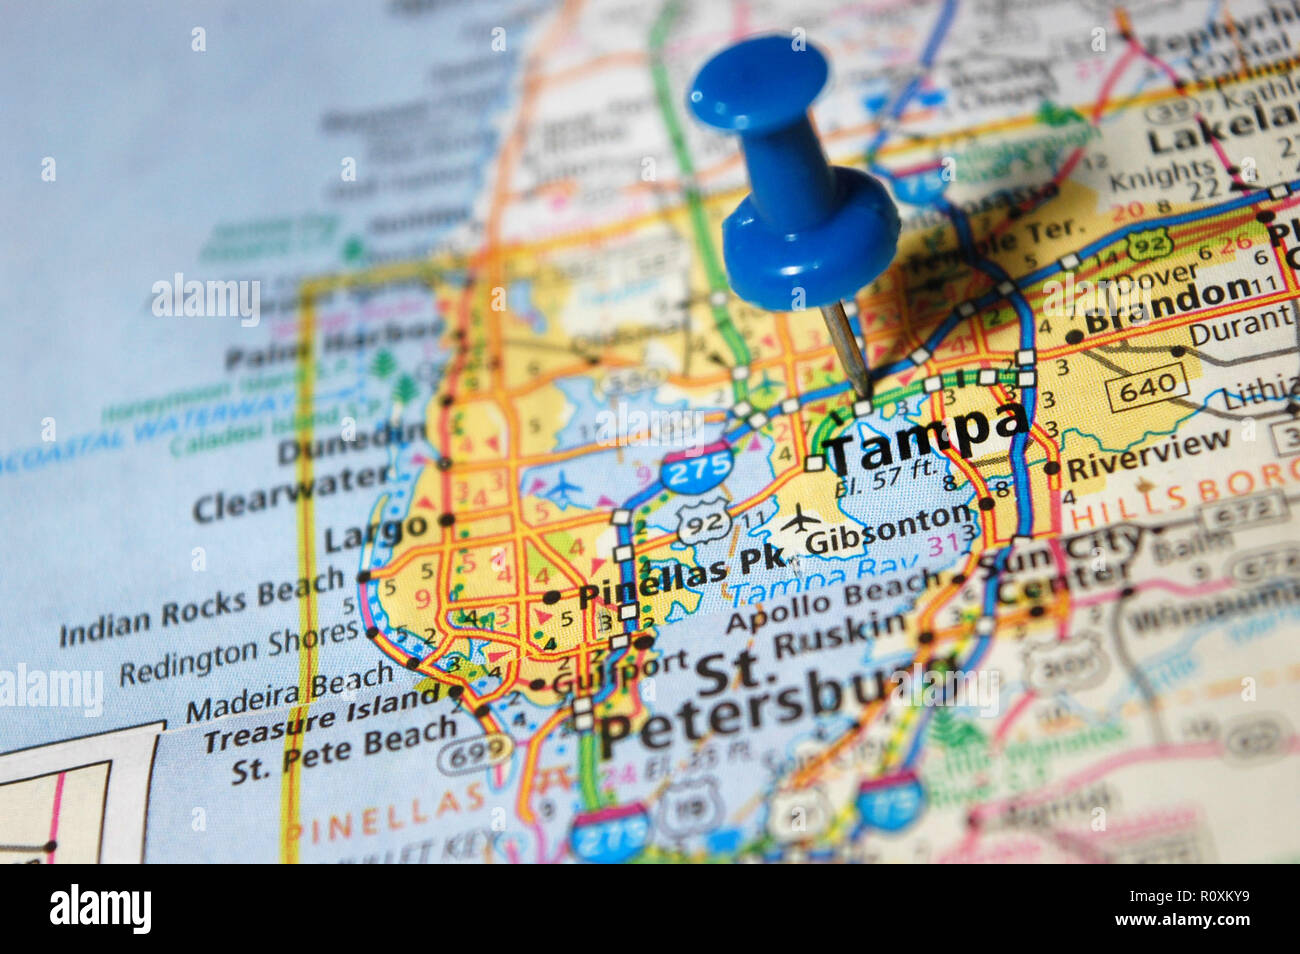 Map Of Tampa Stock Photos & Map Of Tampa Stock Images - Alamy Map Tampa on